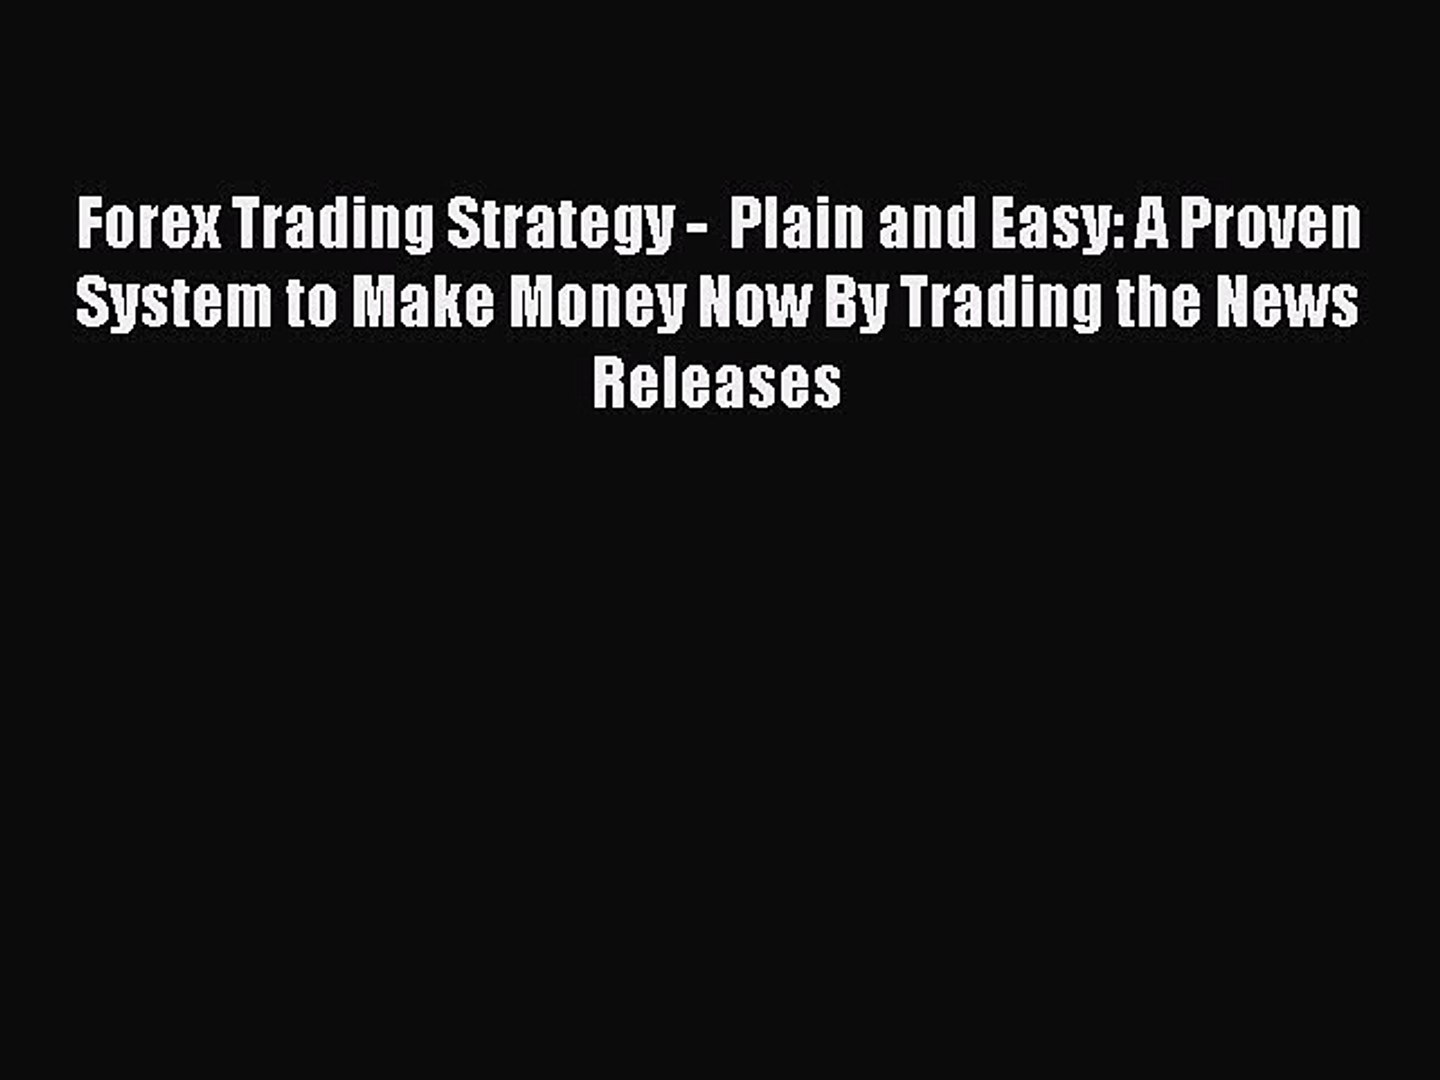 Read Forex Trading Strategy -  Plain and Easy: A Proven System to Make Money Now By Trading